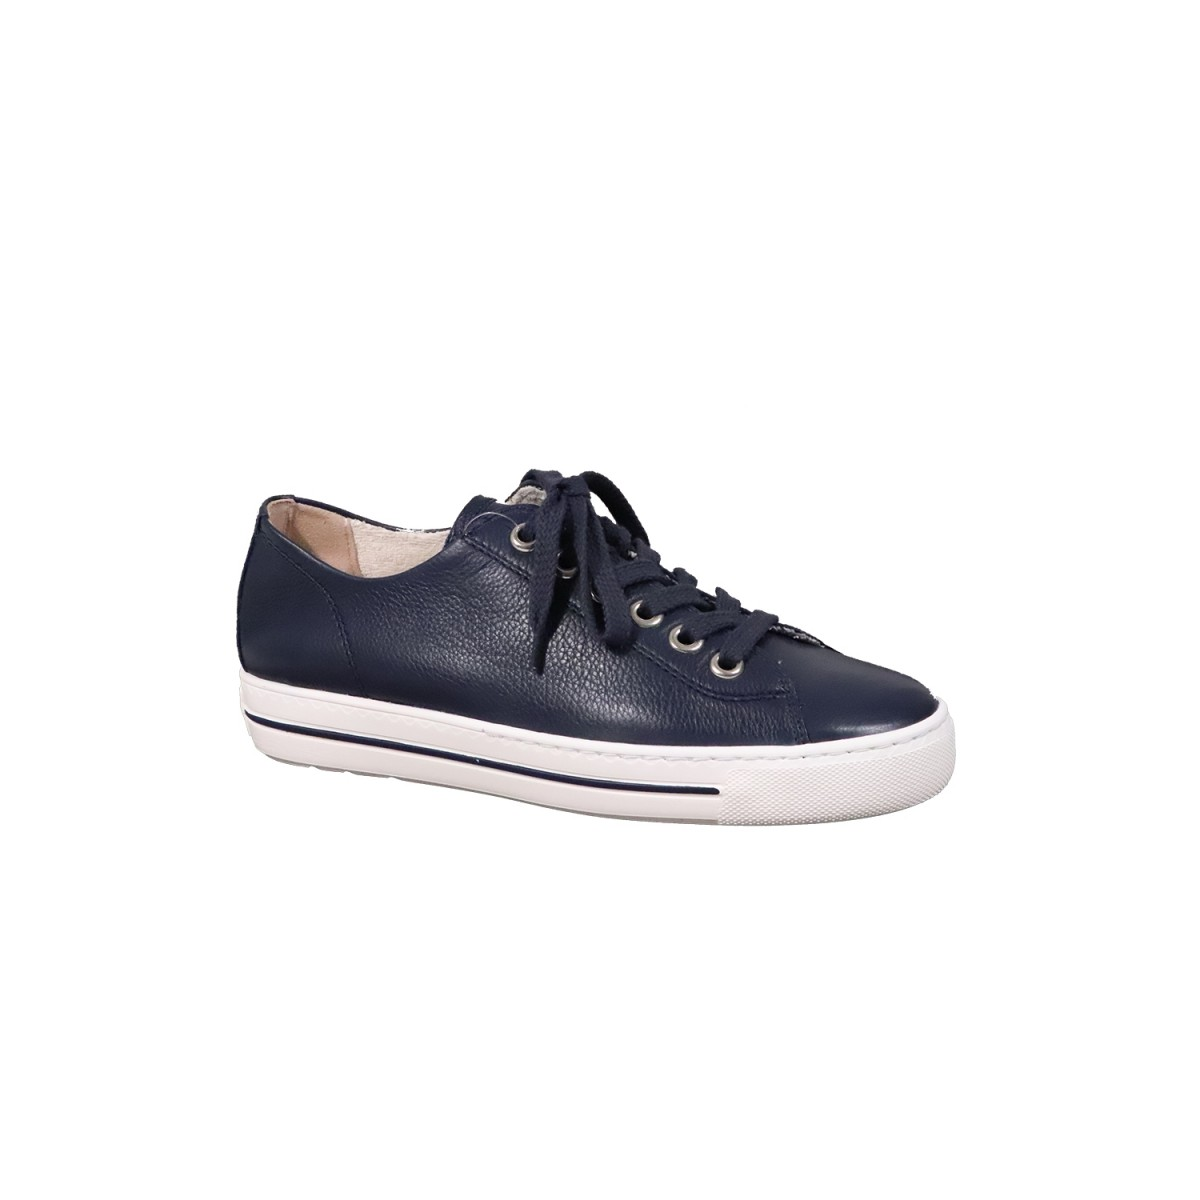 Paul Green 4704-08 Sneaker Mastercalf Space-31